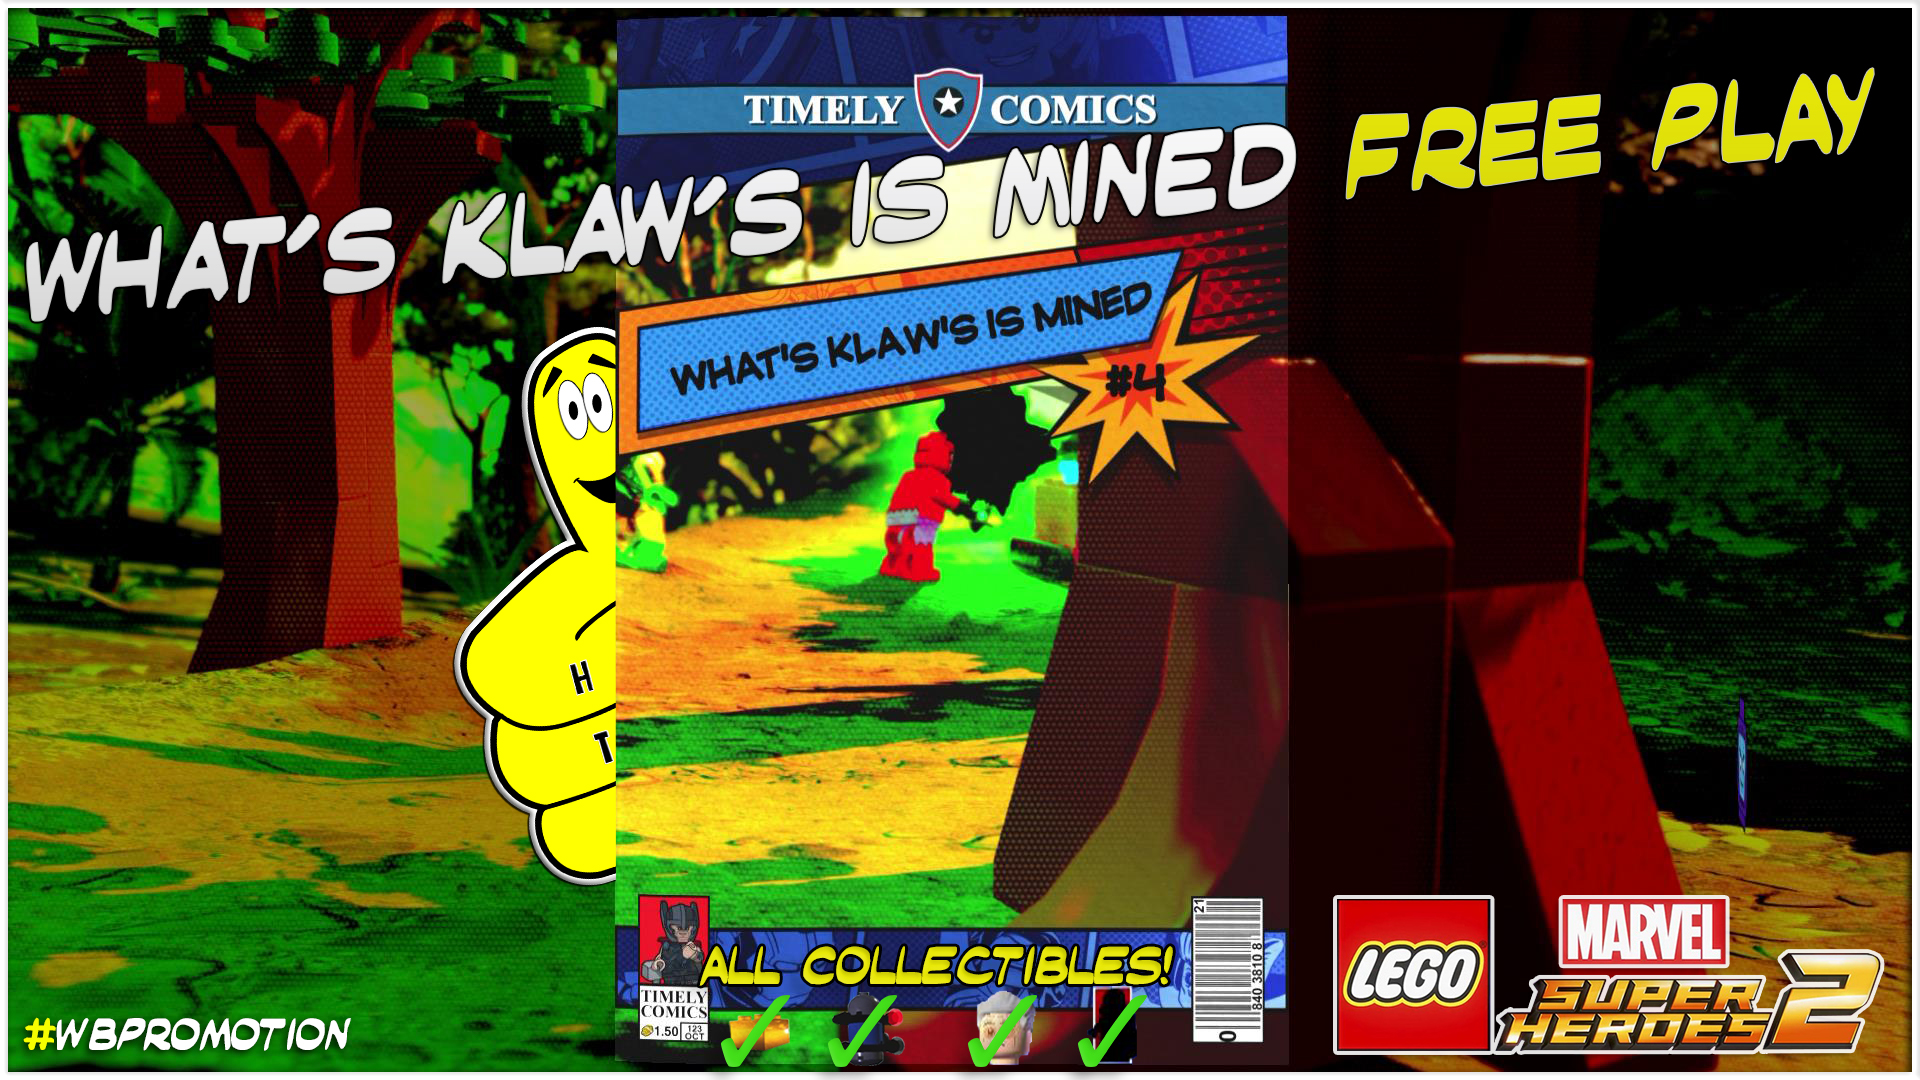 Lego Marvel Superheroes 2: Lvl 4 / What's Klaw's Is Mined FREE PLAY (All Collectibles) – HTG